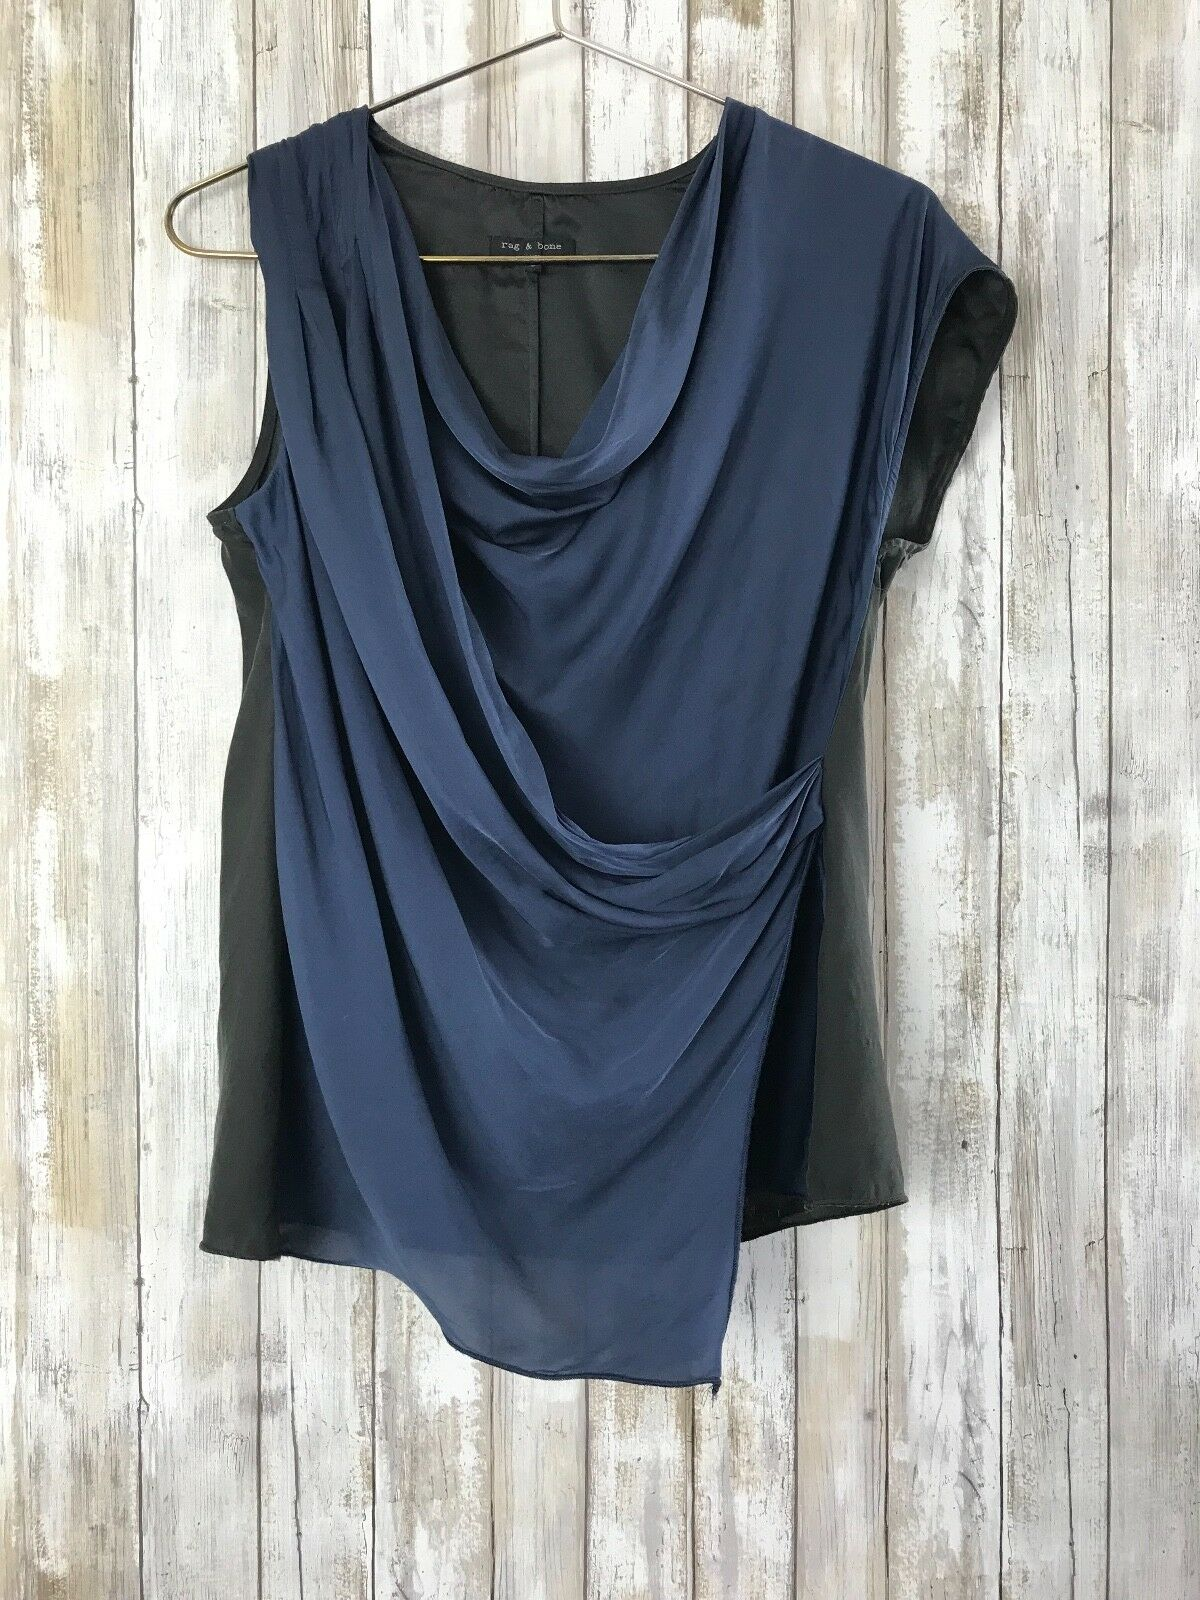 Rag & Bone Blau schwarz Drape Front Silk Blouse Tank Top Sleeveless S Small